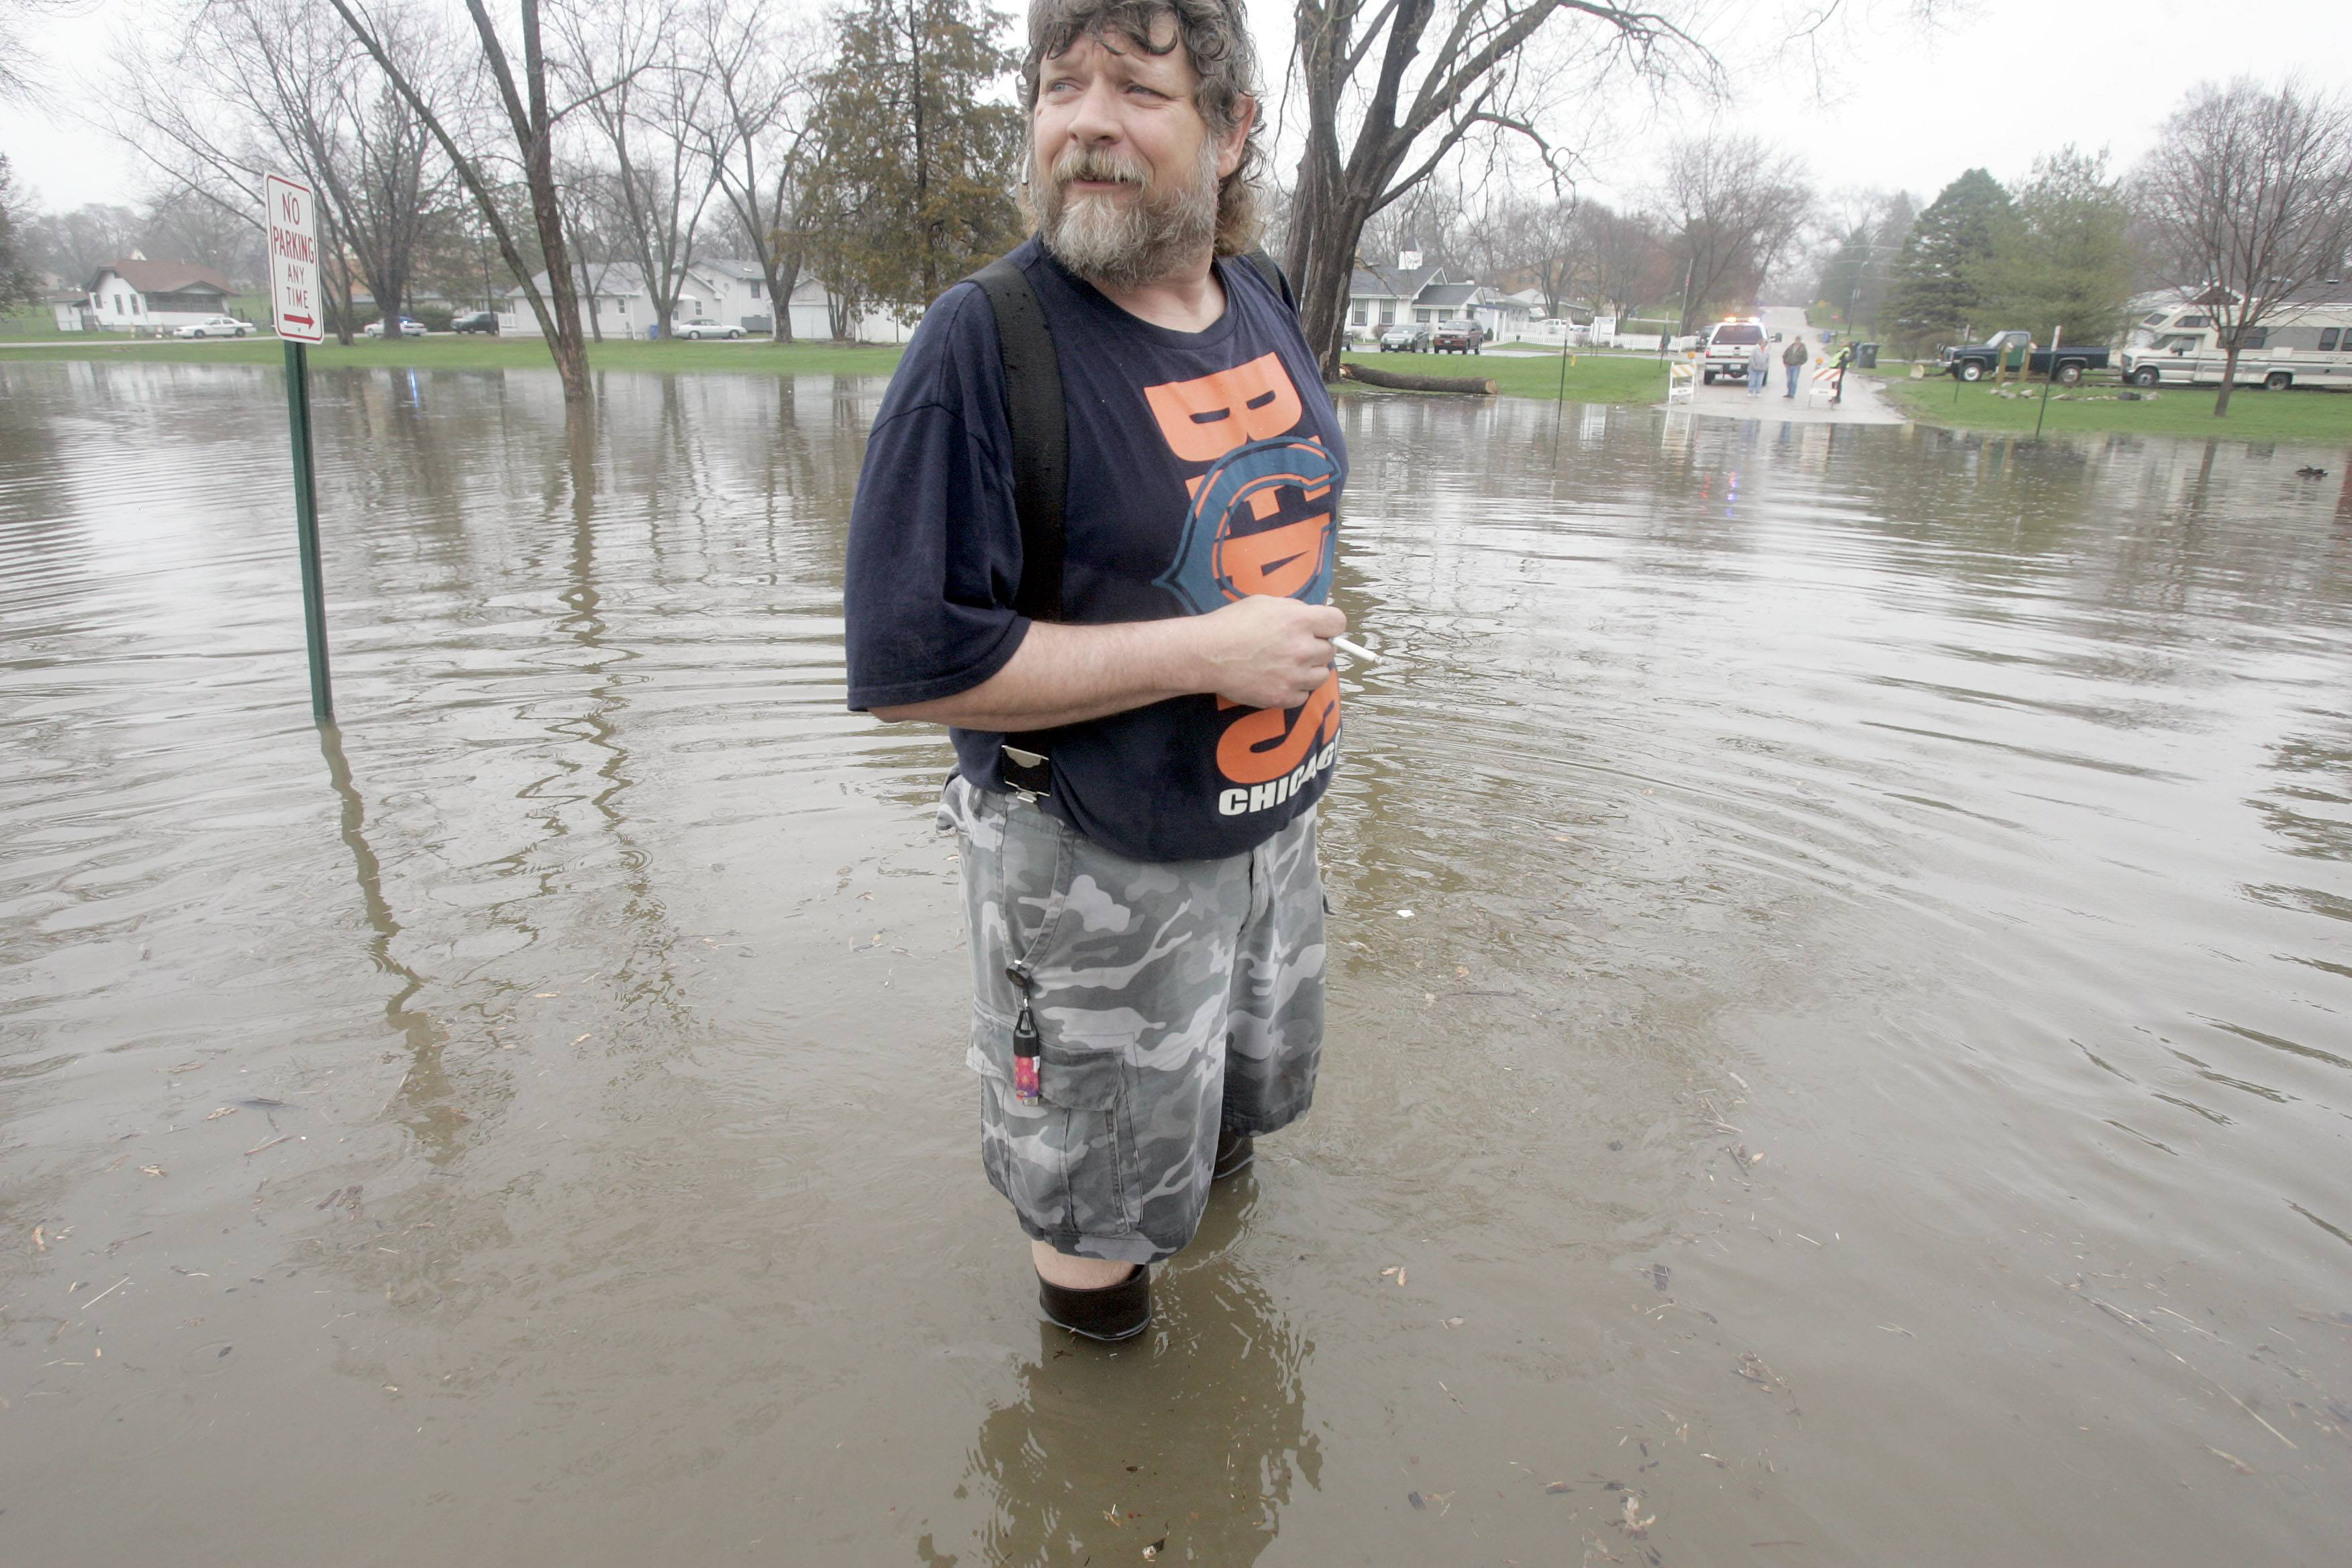 Mike Brancecum of South Elgin stands knee deep in flood water just East of his home on East Spring Ave in South Elgin after flooding on the Fox River Thursday in South Elgin.